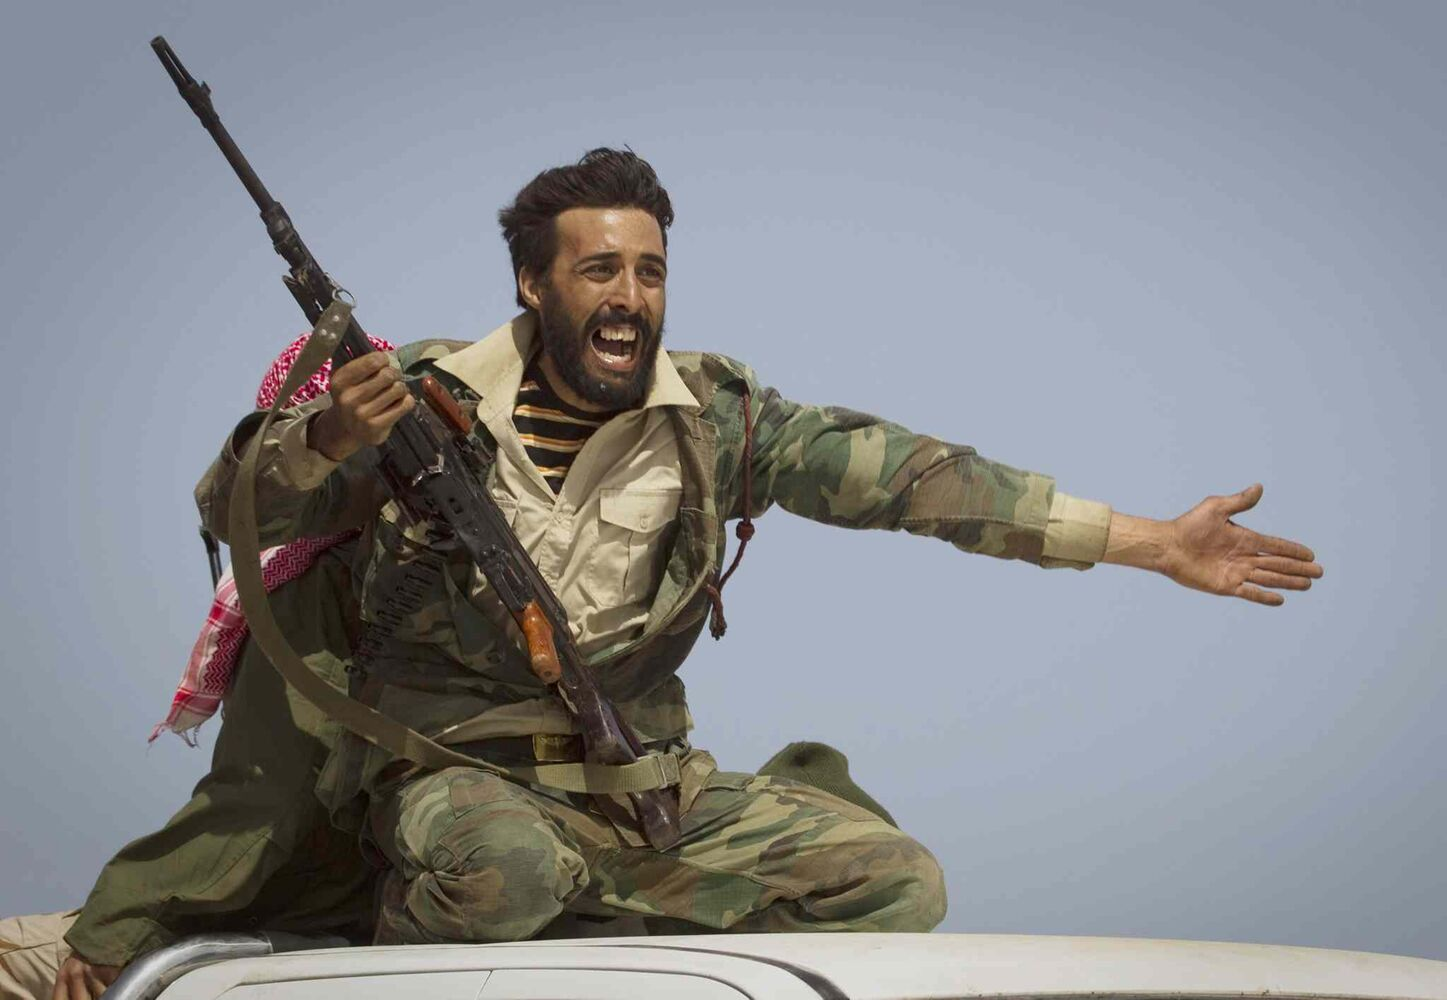 March 29, 2011: A Libyan rebel urges people to leave as shelling from Gadhafi's forces started landing on the frontline outside of Bin Jawaad, 150 kilometers (93 miles) east of Sirte, central Libya.